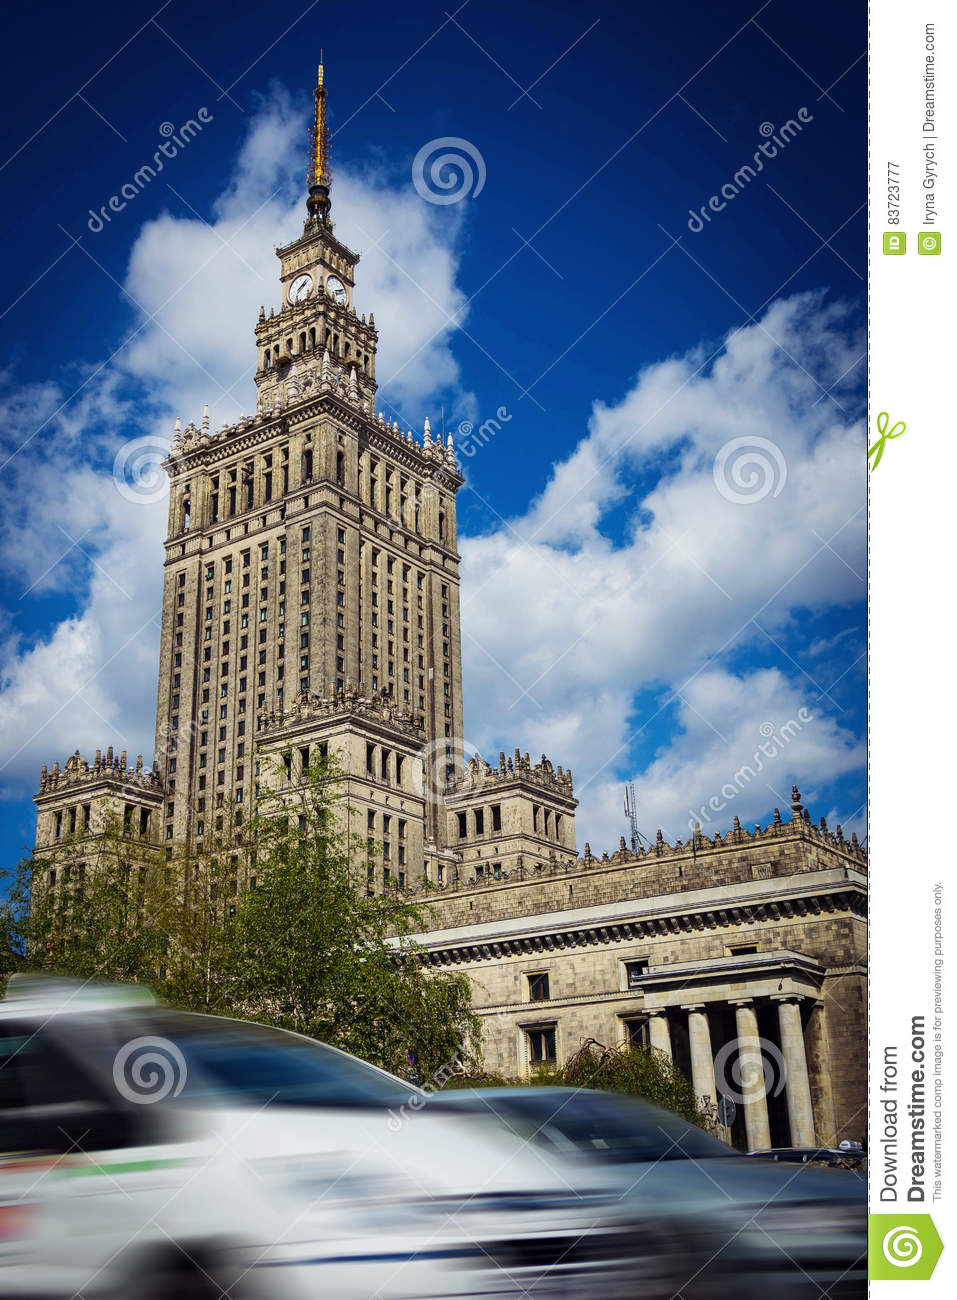 The Palace Of Culture And Science In Warsaw, Poland Editorial Photography